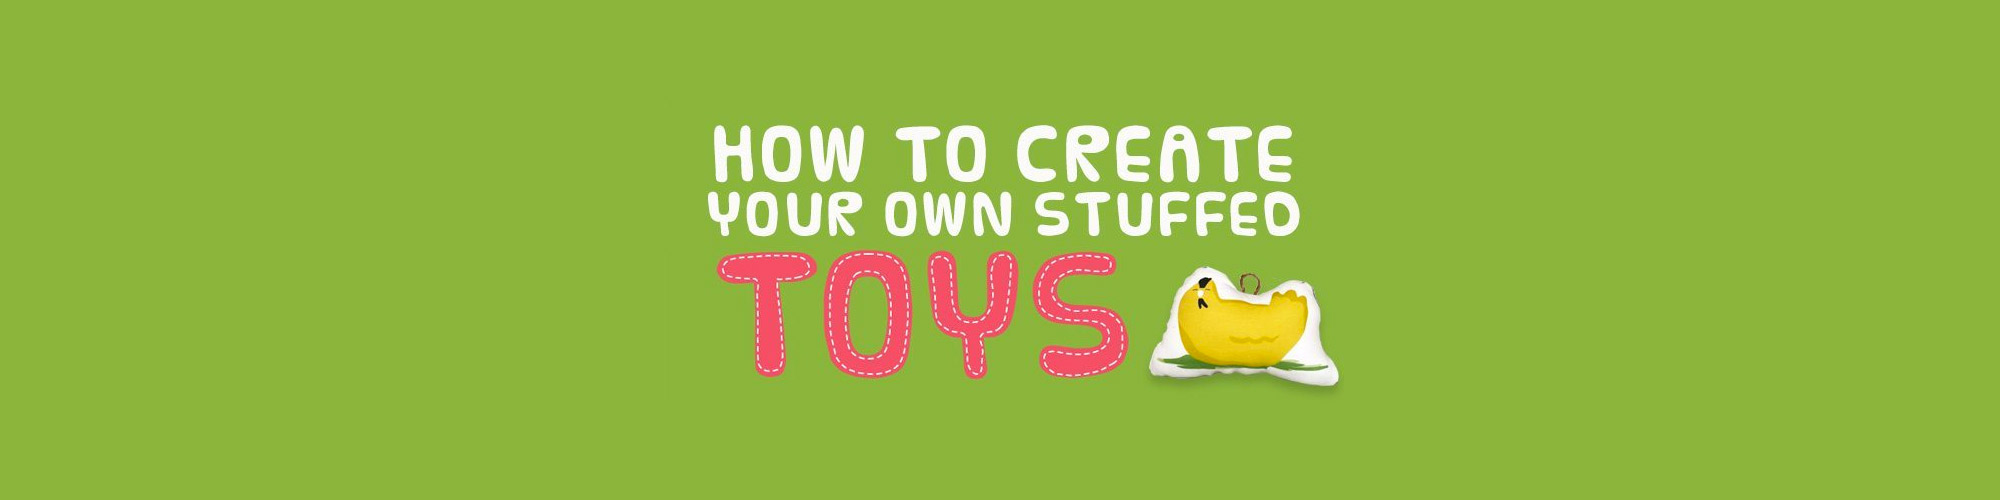 Stuffed Toys Design Project – The Farm